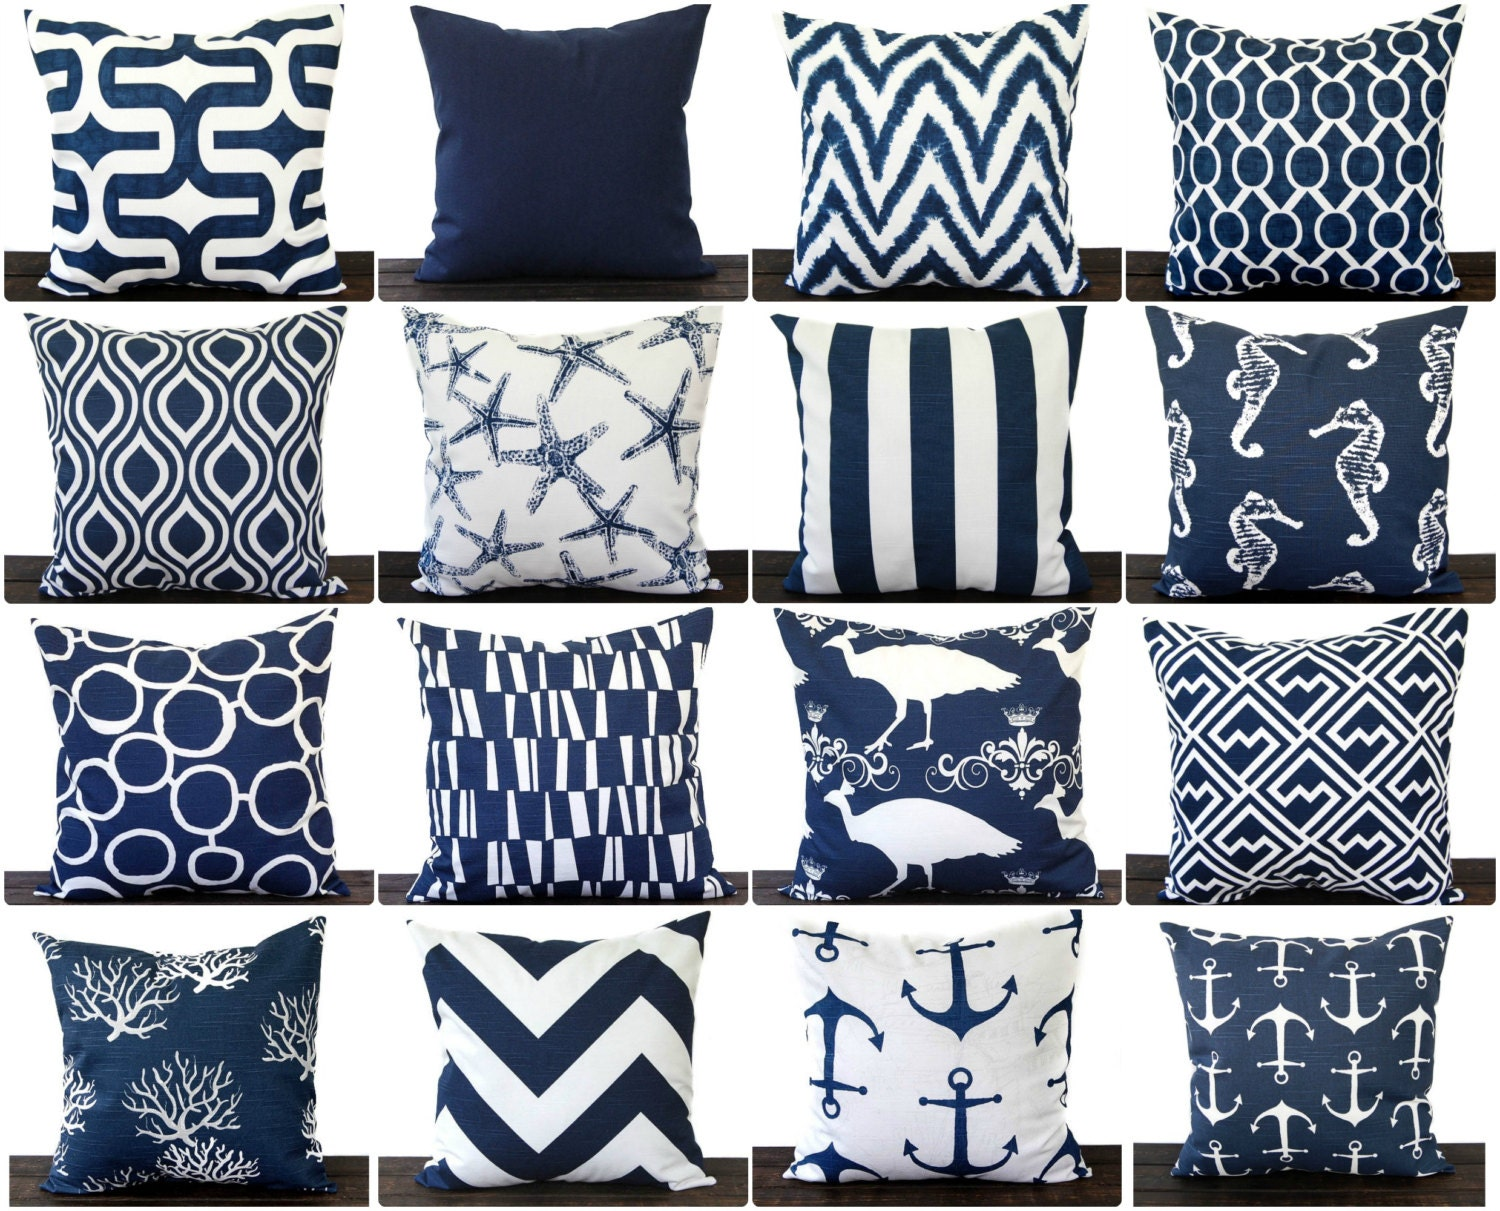 Navy Blue throw pillow cover One cushion cover in Premier Navy